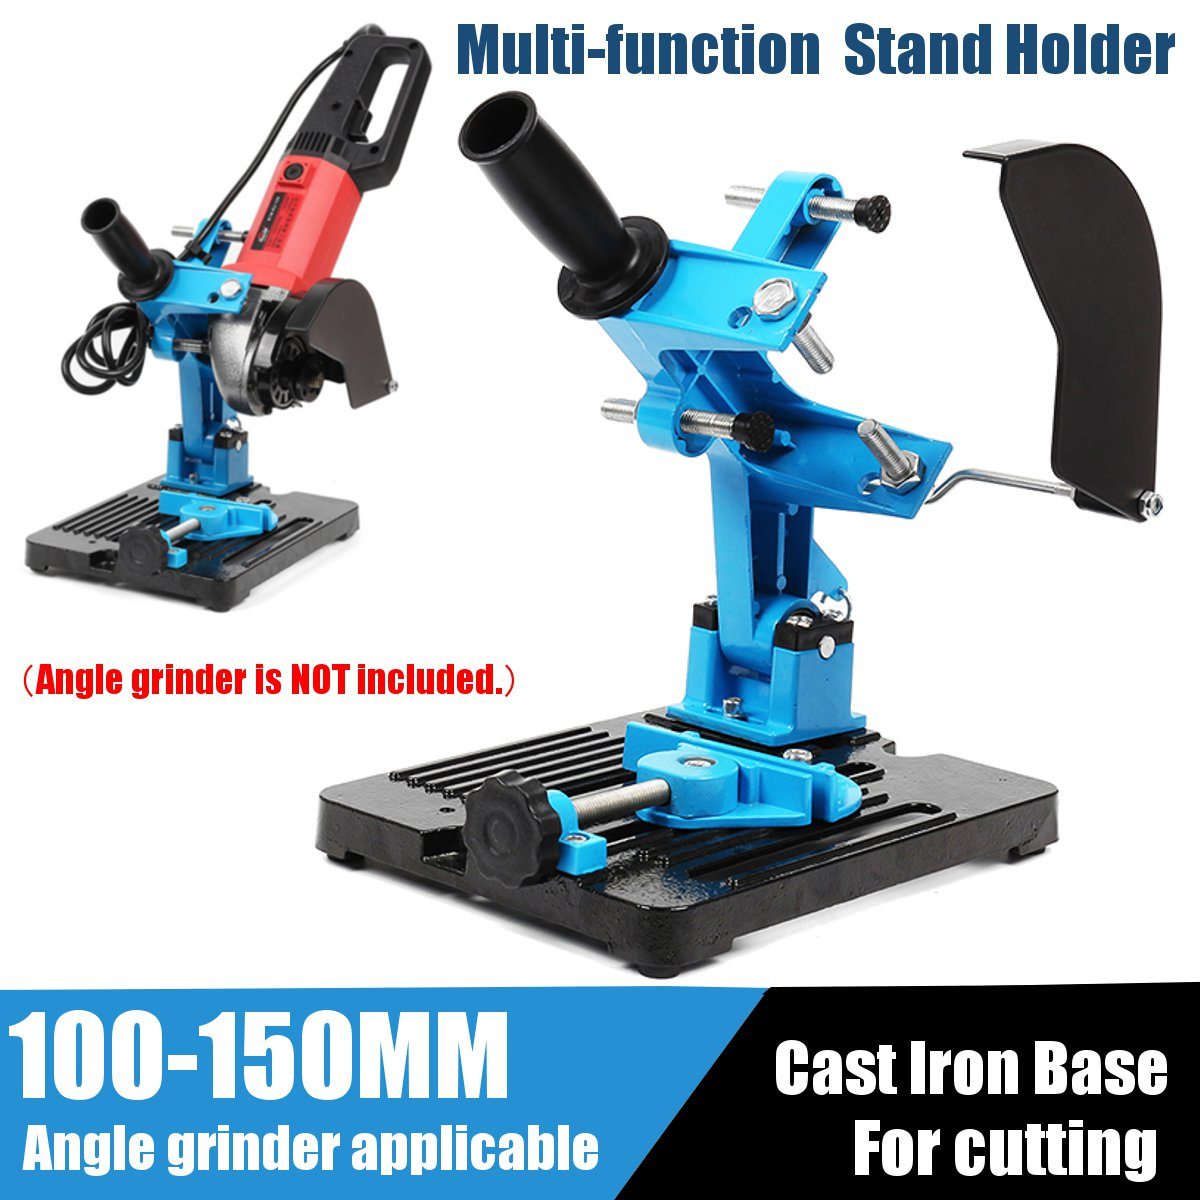 New 115-150 Angle Grinder Stand Double Bearing Bracket Angle Cutter Support Bracket Holder Dock Cast Iron Base Holder 125 angle grinding frame angle grinder holder stand bracket support angle grinder conversion cutter accessories for 115 to 125mm